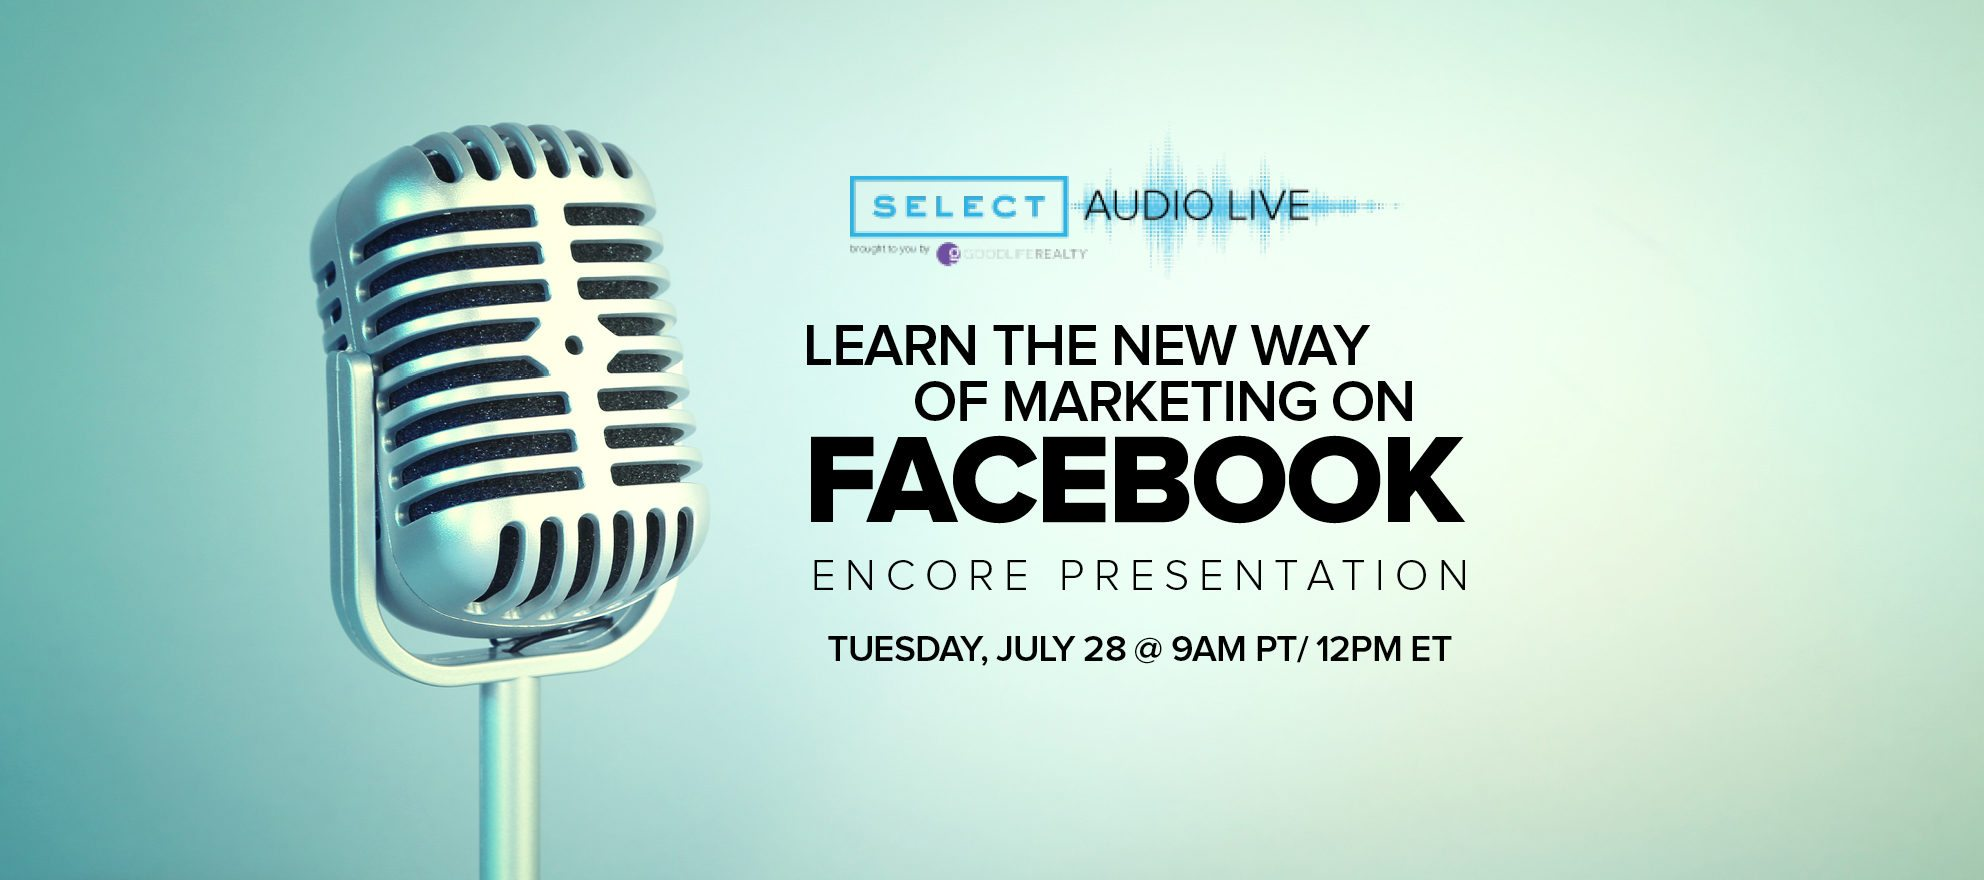 Garry Wise and Chris Scott share the new rules of marketing on Facebook